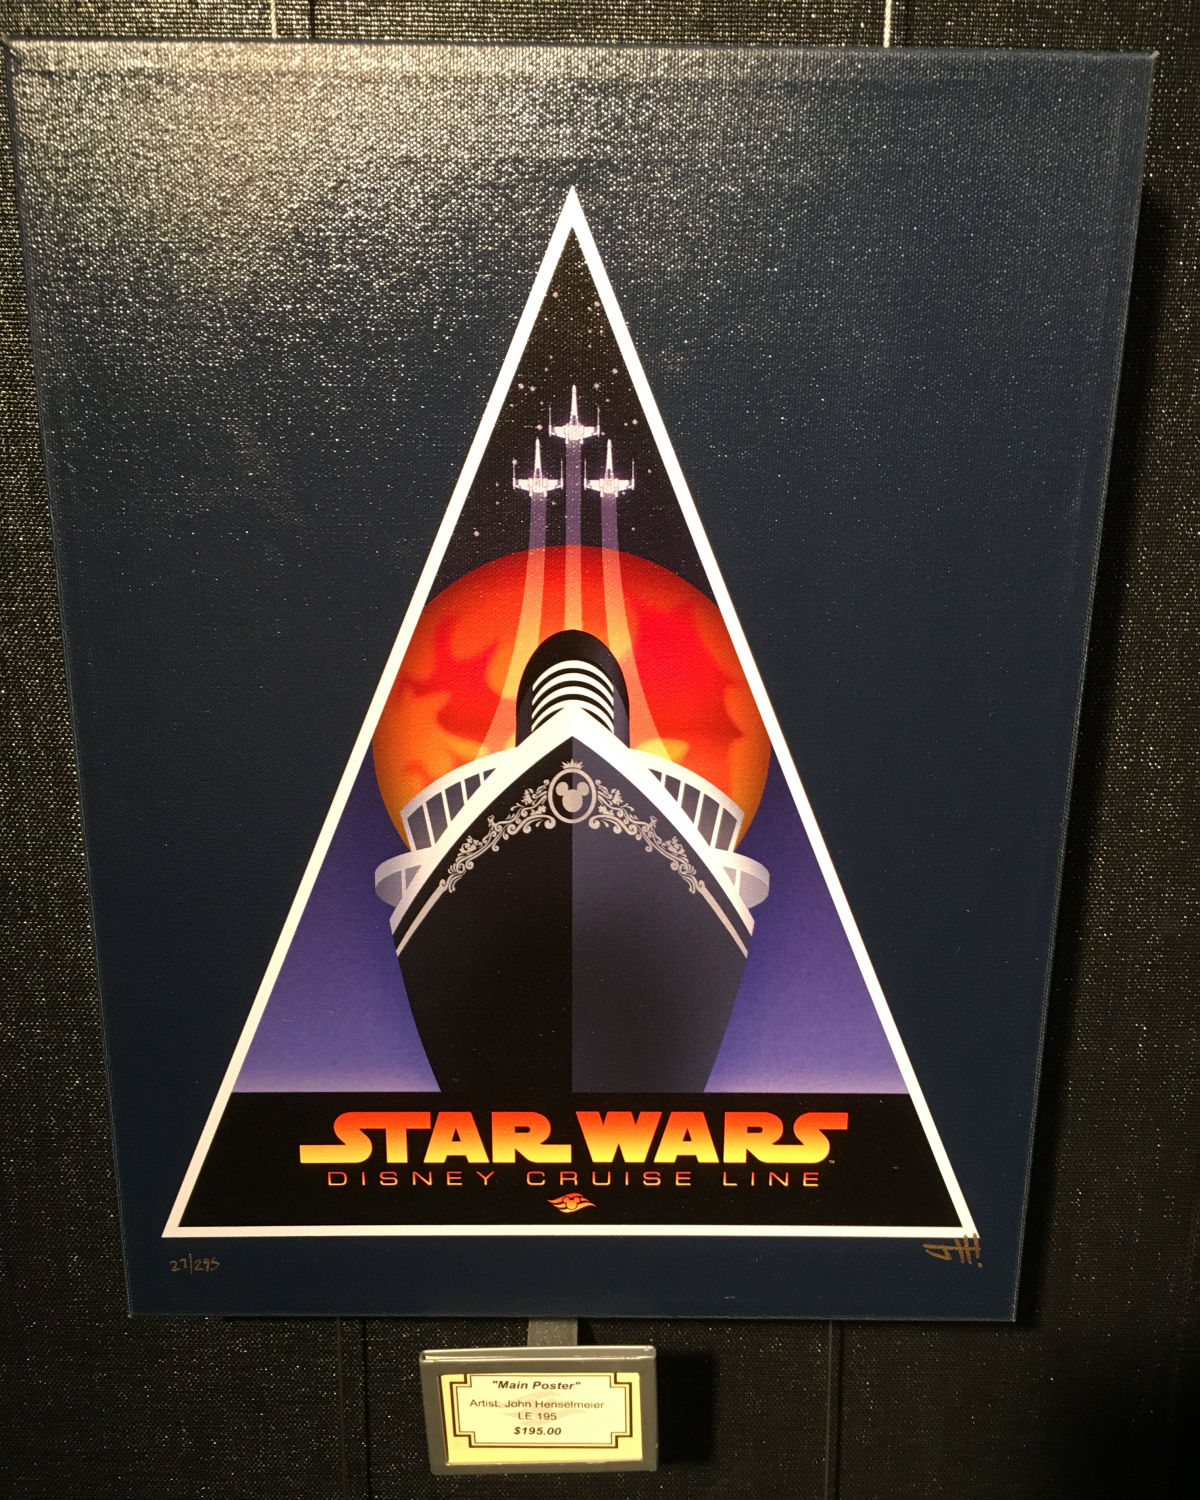 Disney Cruise Line Star Wars Merchandise Photos